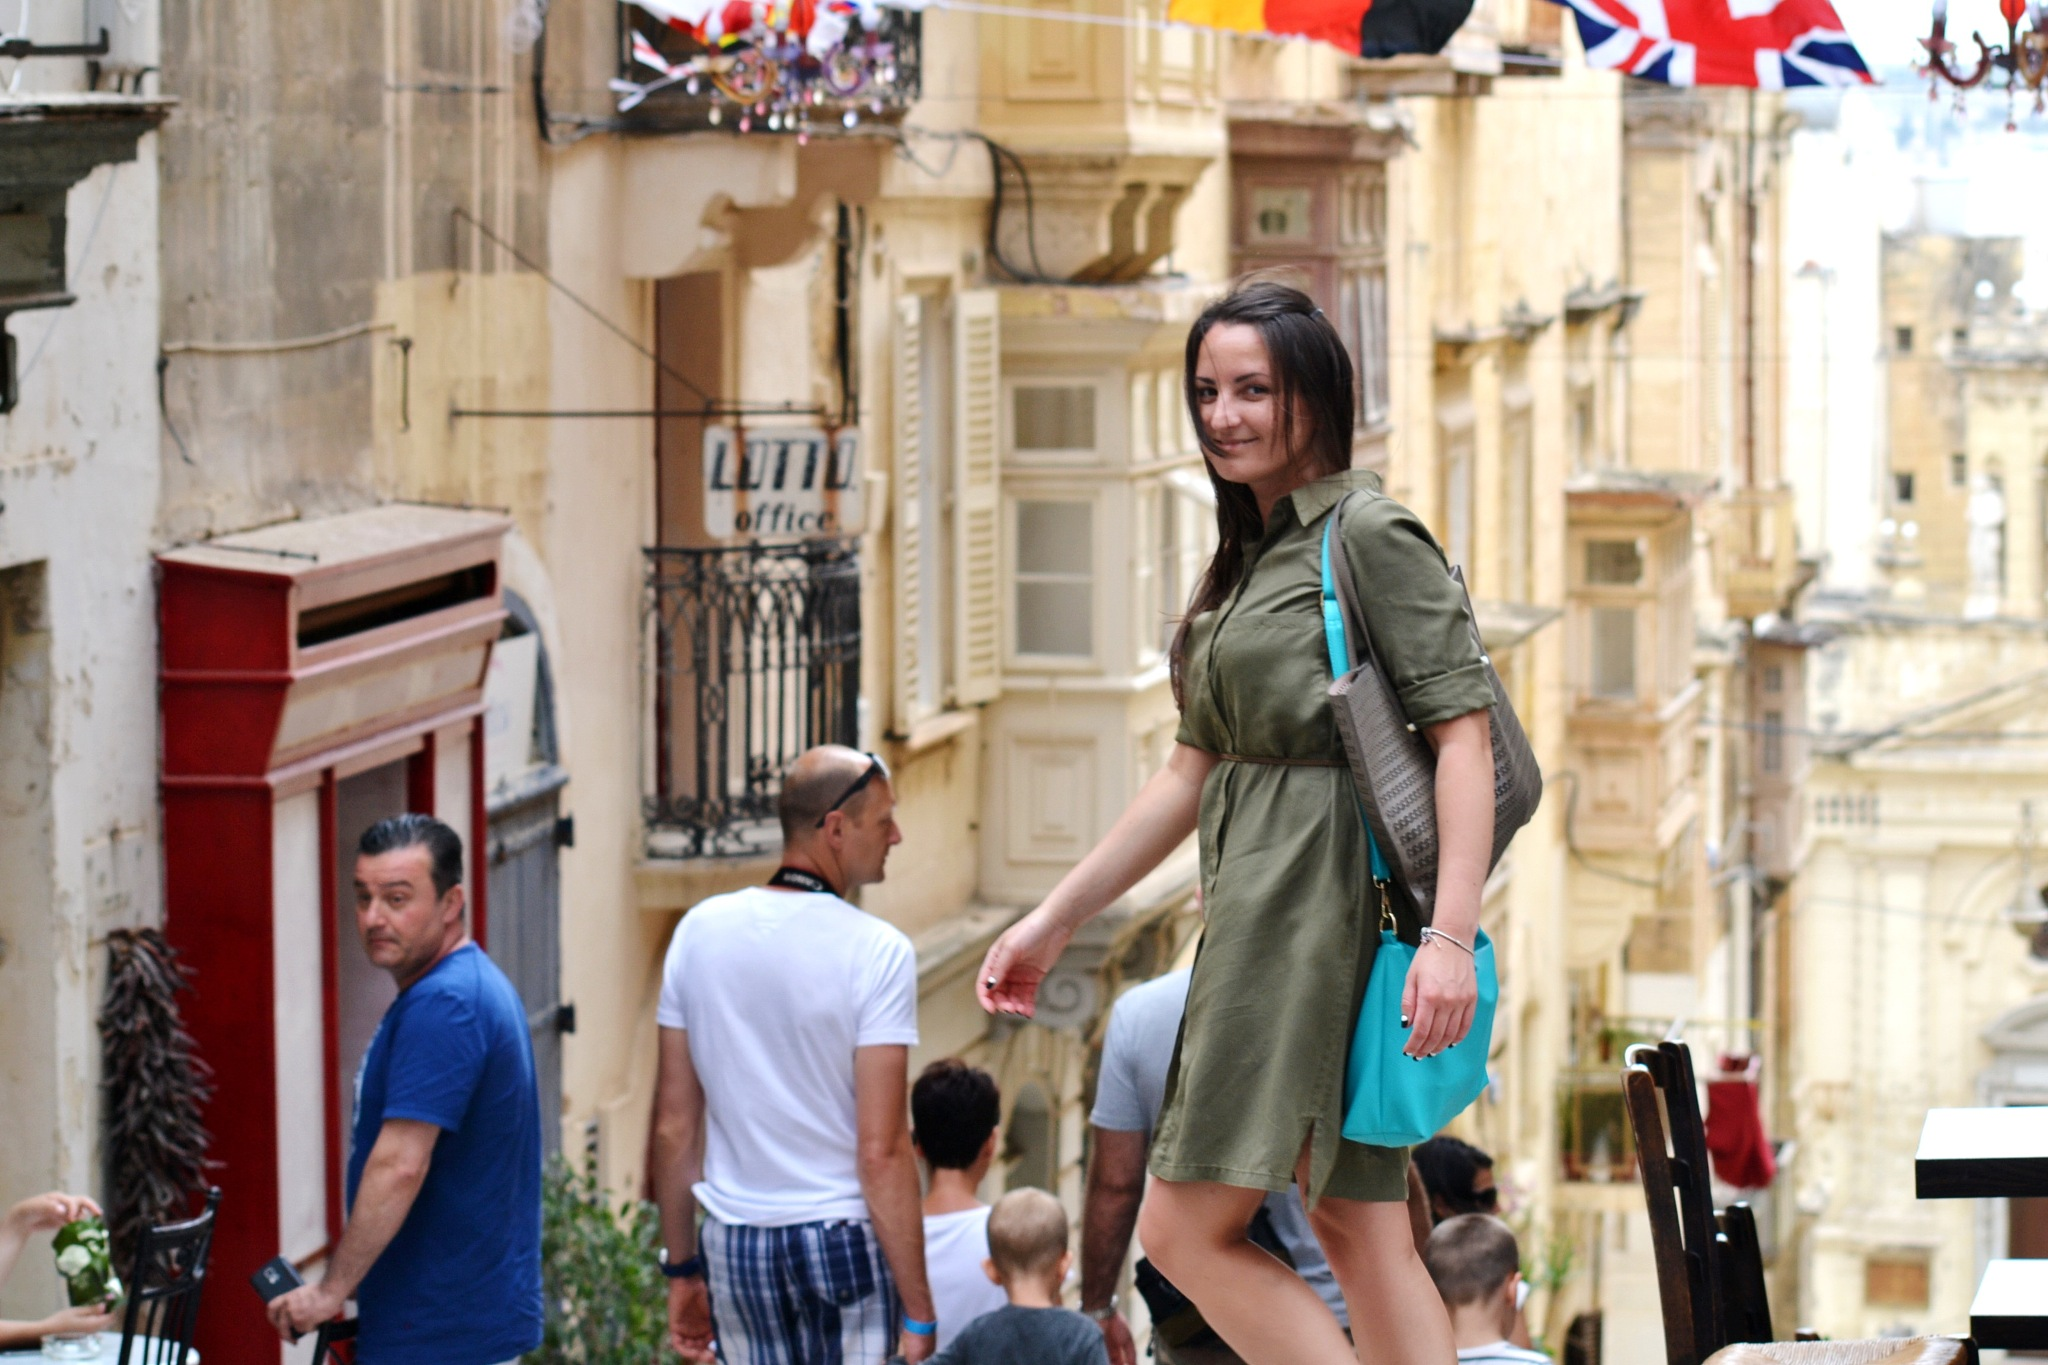 Busy streets of Valletta by Maria A. Lass